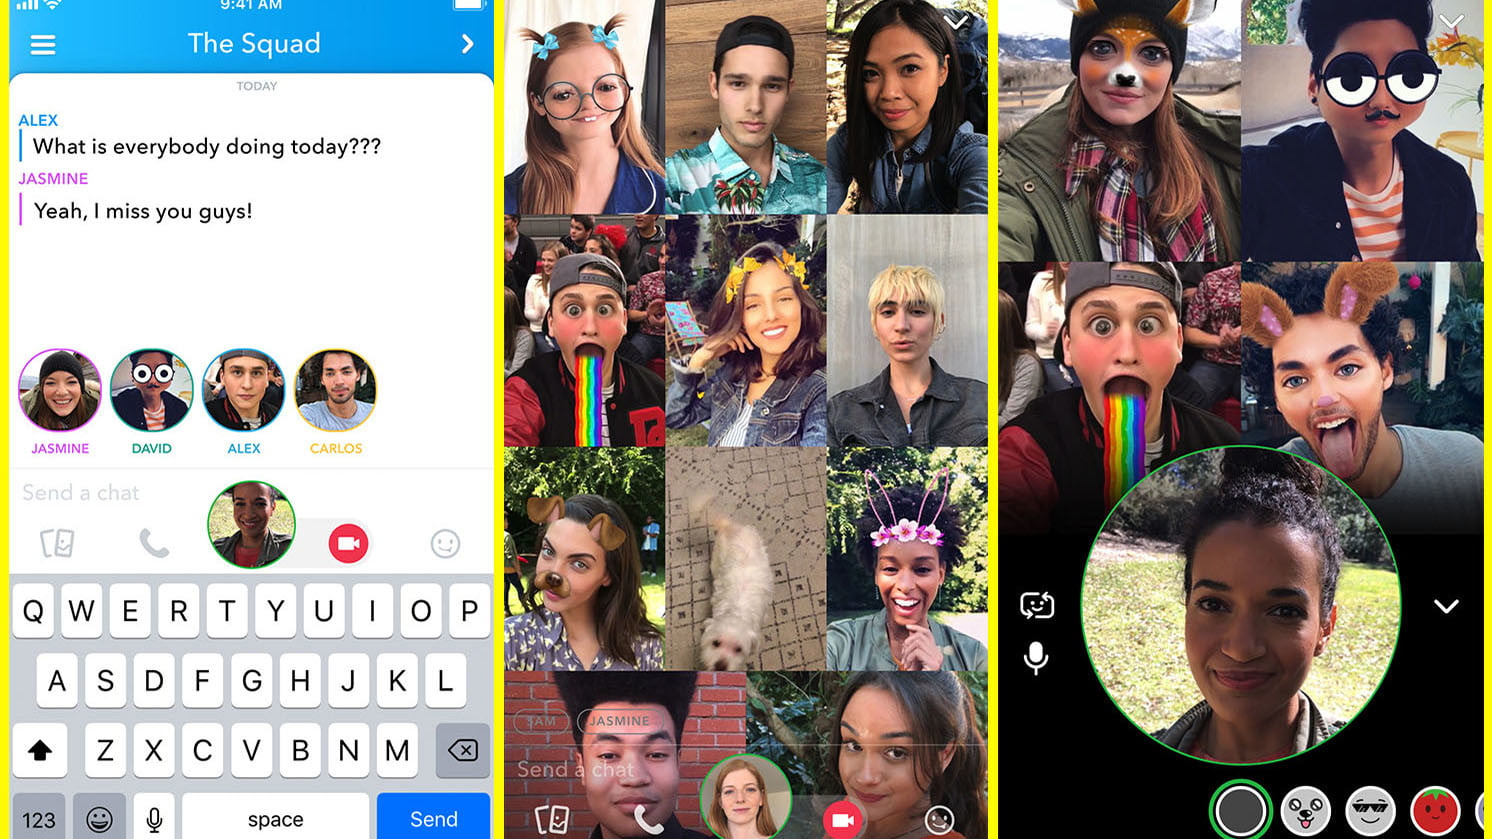 Hangout Via Video Chat With Large Groups With Snapchat's New